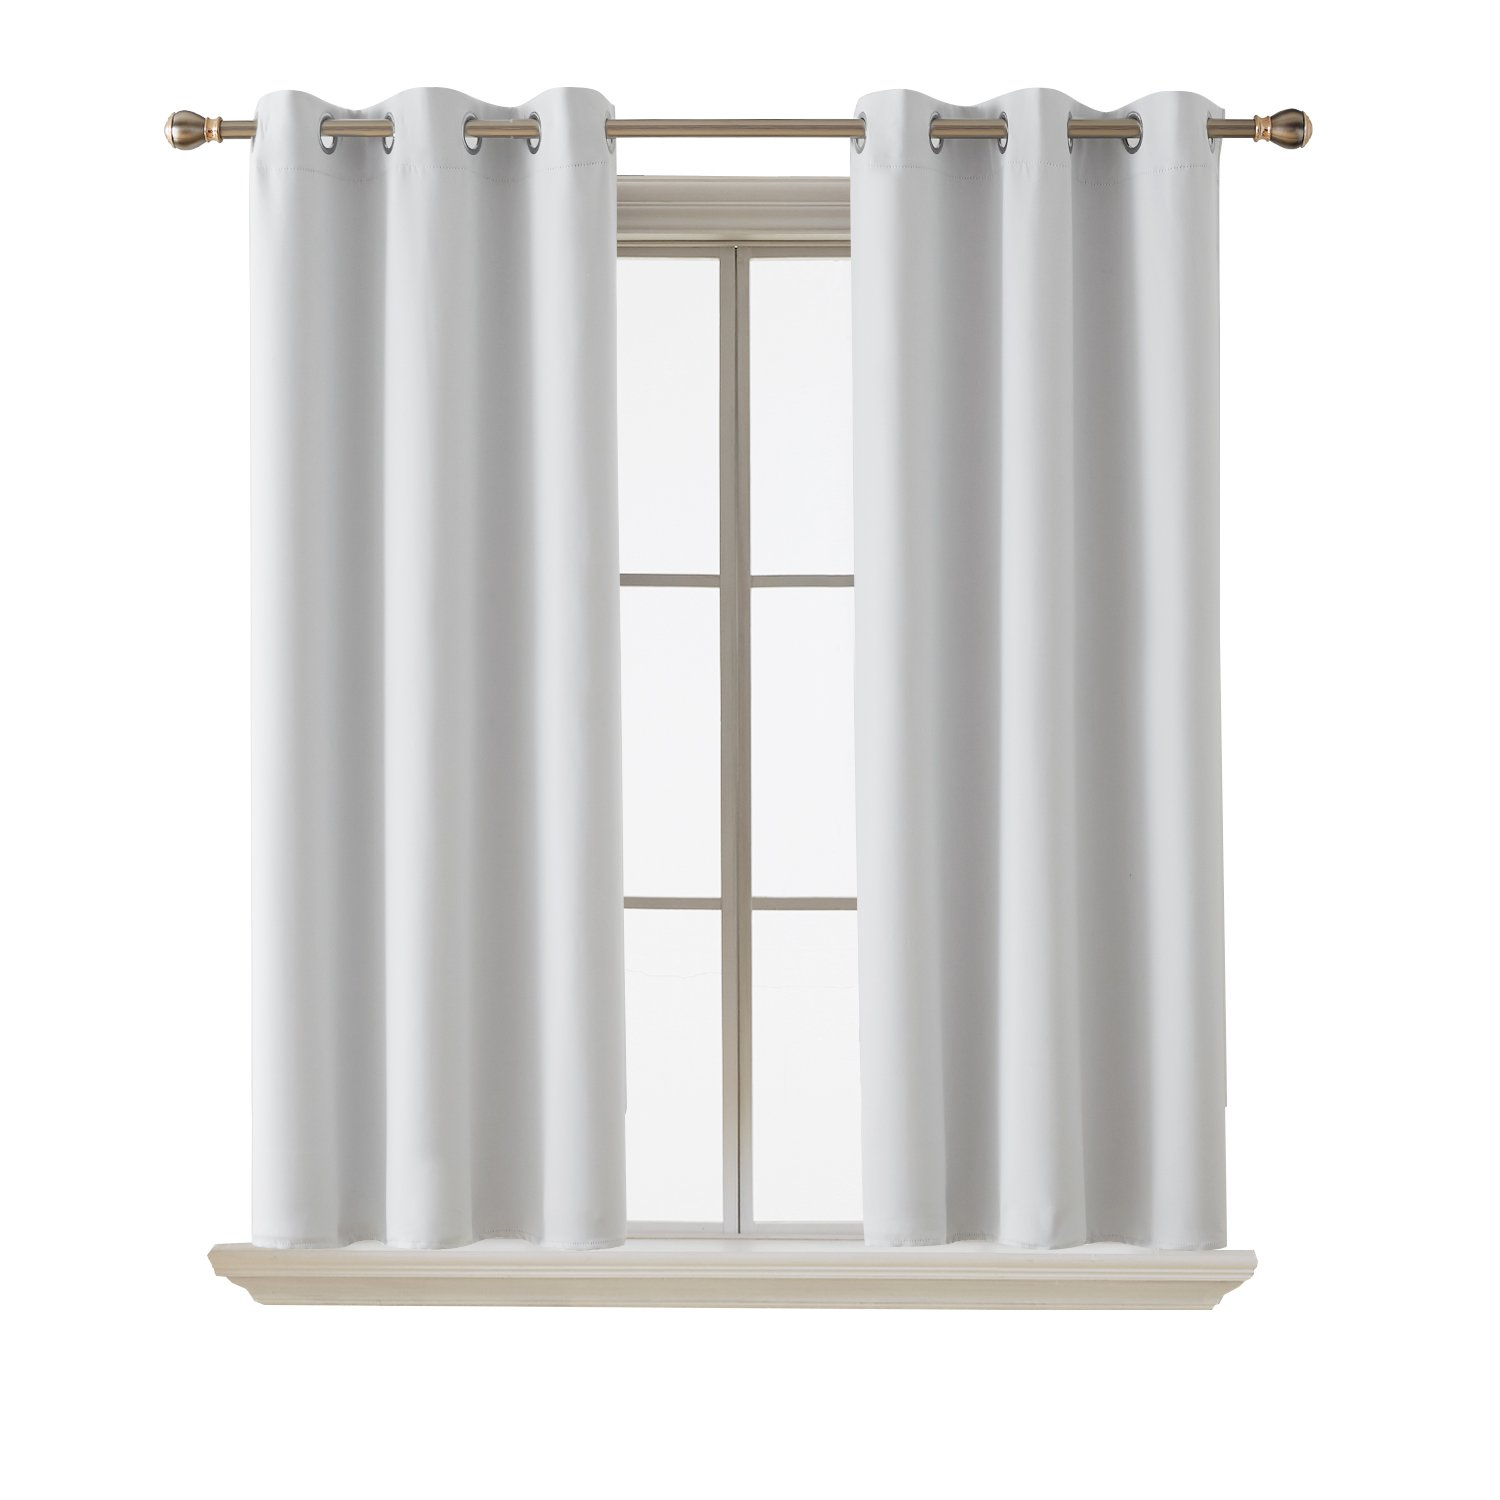 Deconovo Room Darkening Thermal Insulated Blackout Grommet Window Curtain Panel For Living Room 42 (42x63 Inch, Star White)